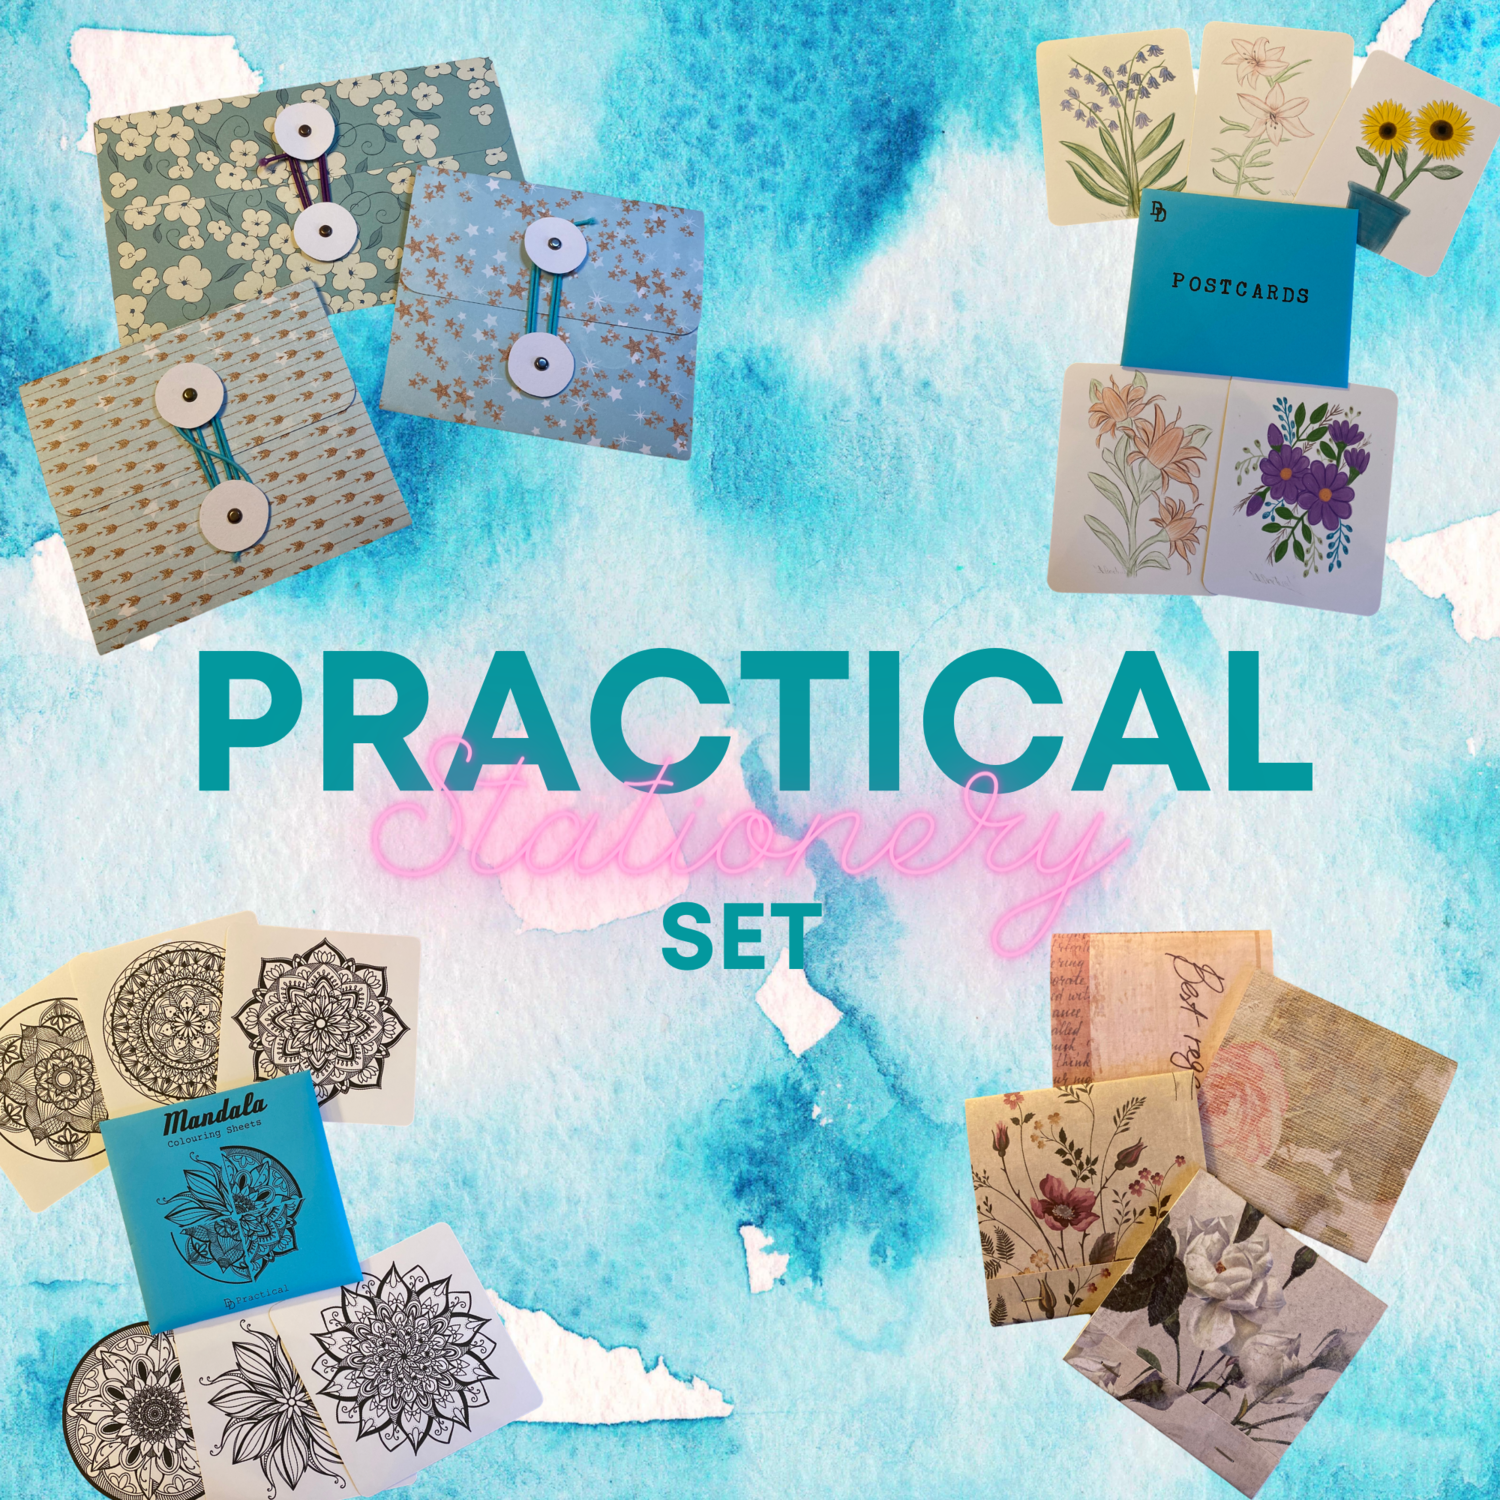 The Practical Stationery Set - 20% off Bundle